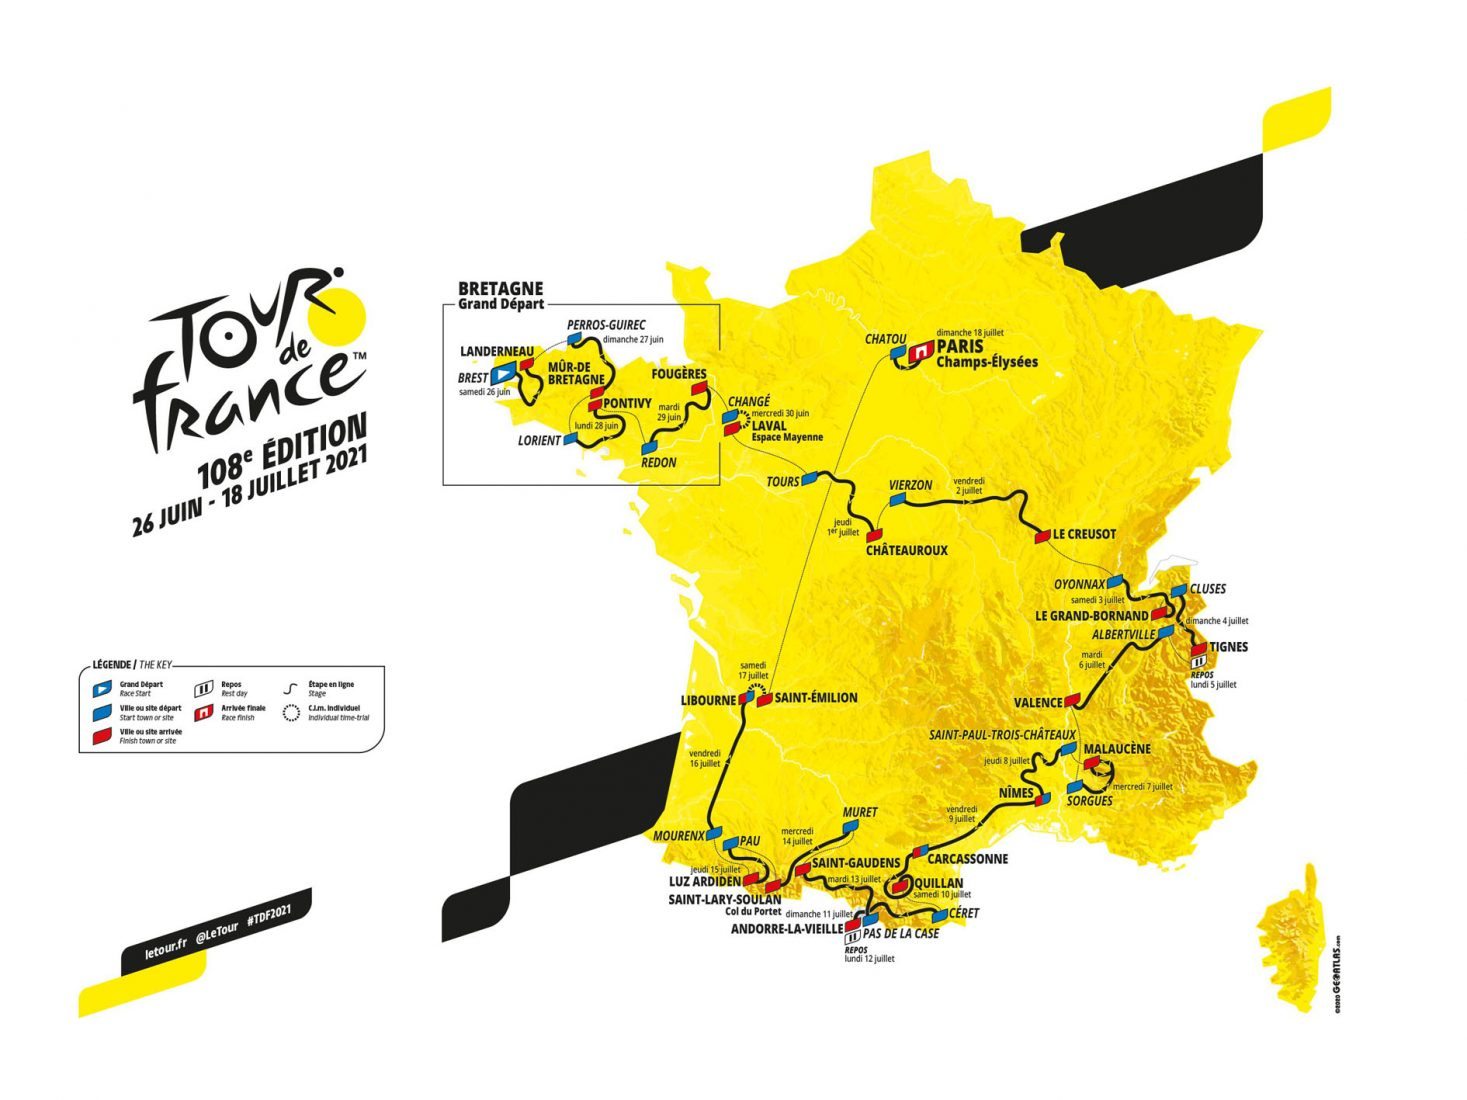 Il percorso del Tour de France 2021